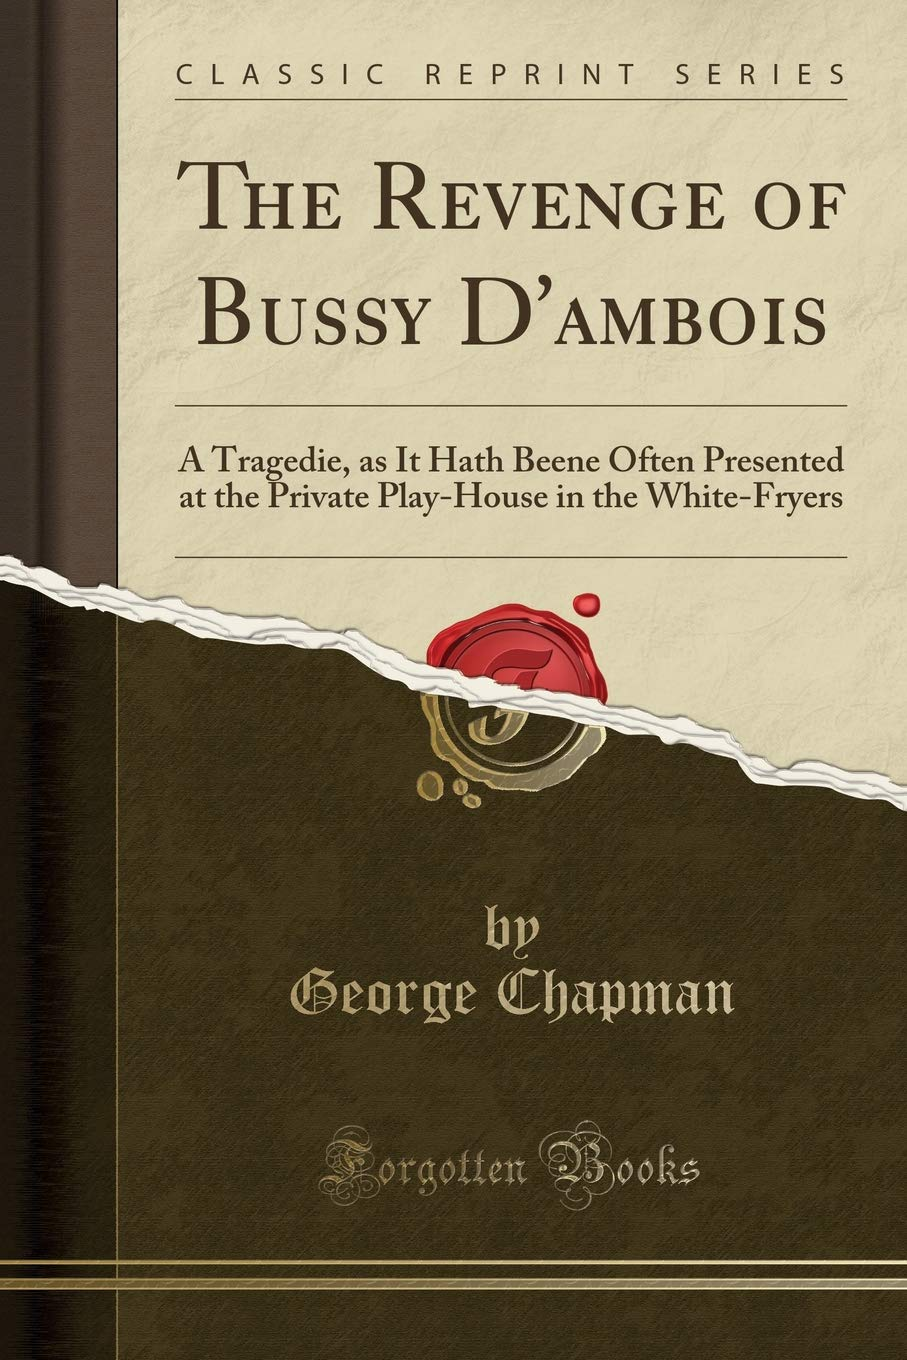 The Revenge of Bussy D'ambois: A Tragedie, as It Hath Beene Often Presented at the Private Play-House in the White-Fryers (Classic Reprint) ebook